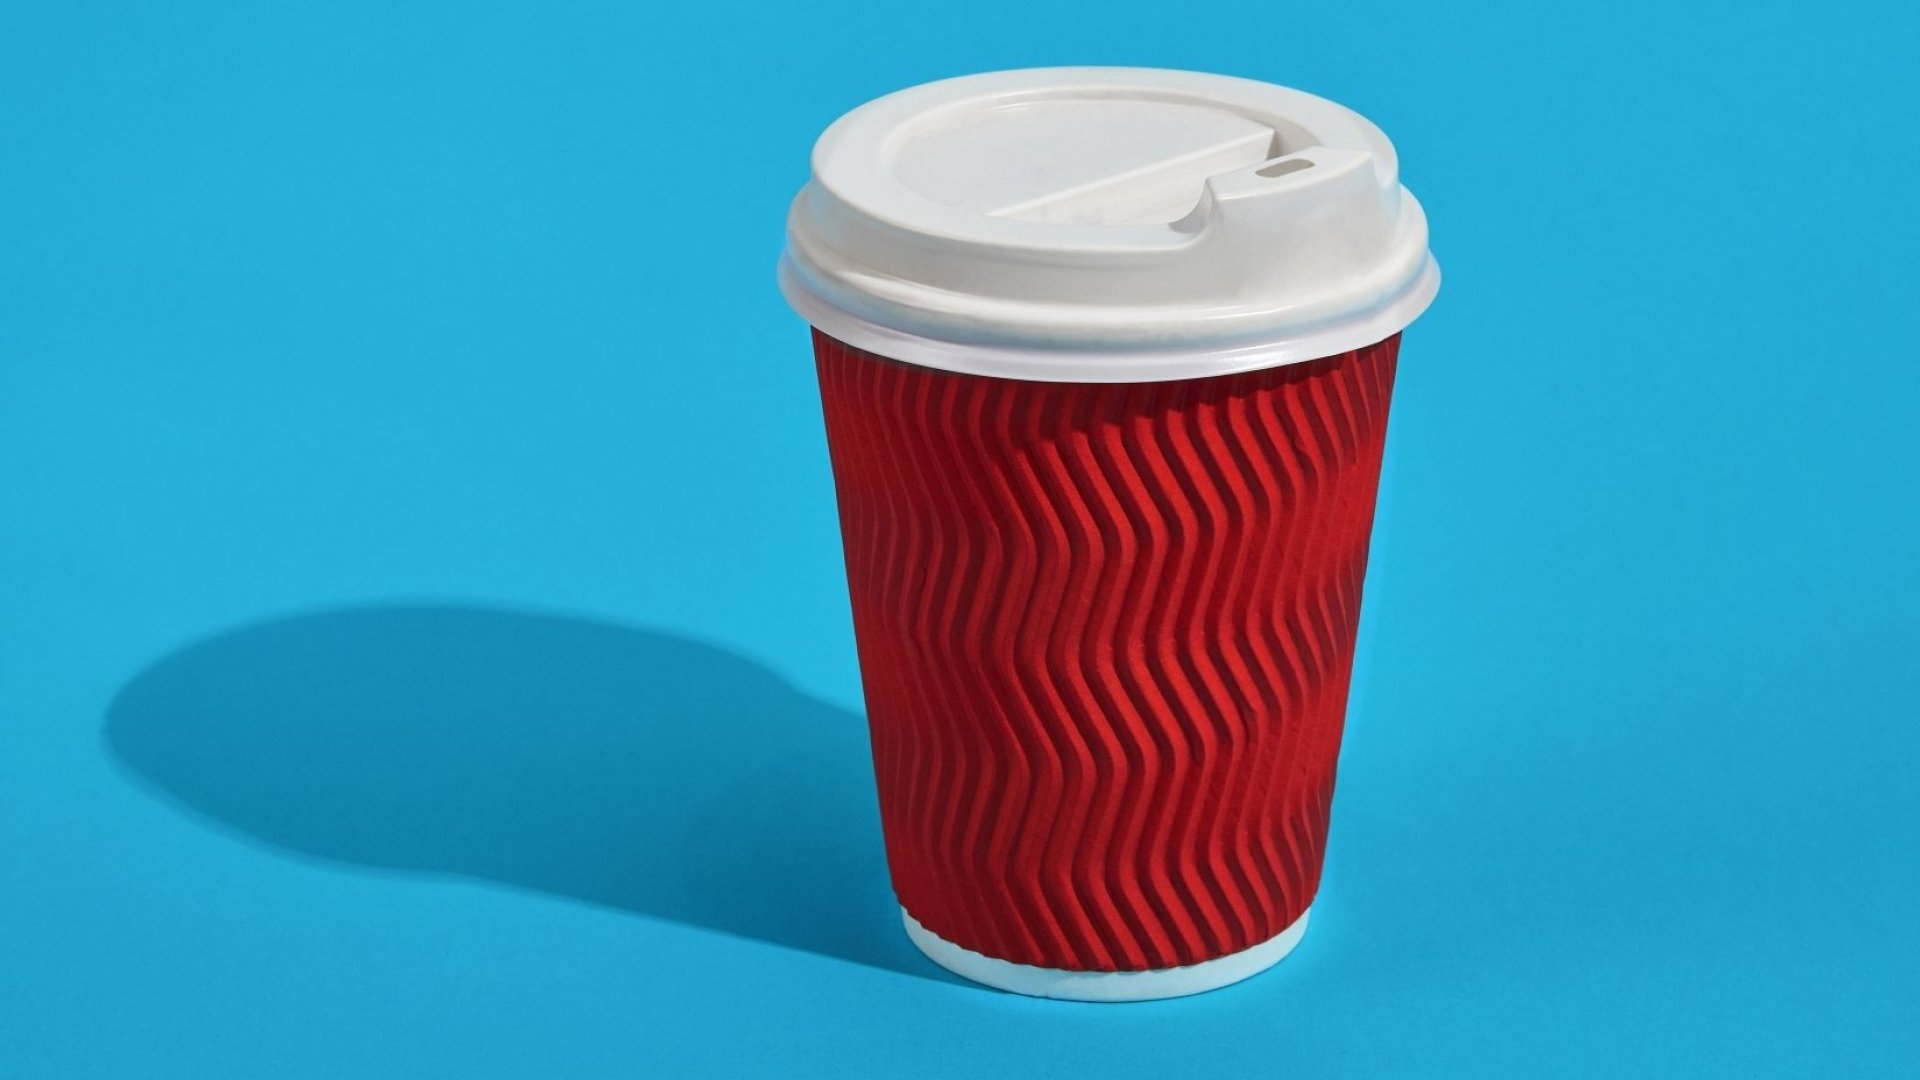 Why Missing That Coffee Could Be the End of Your Business (It Was for Mine)